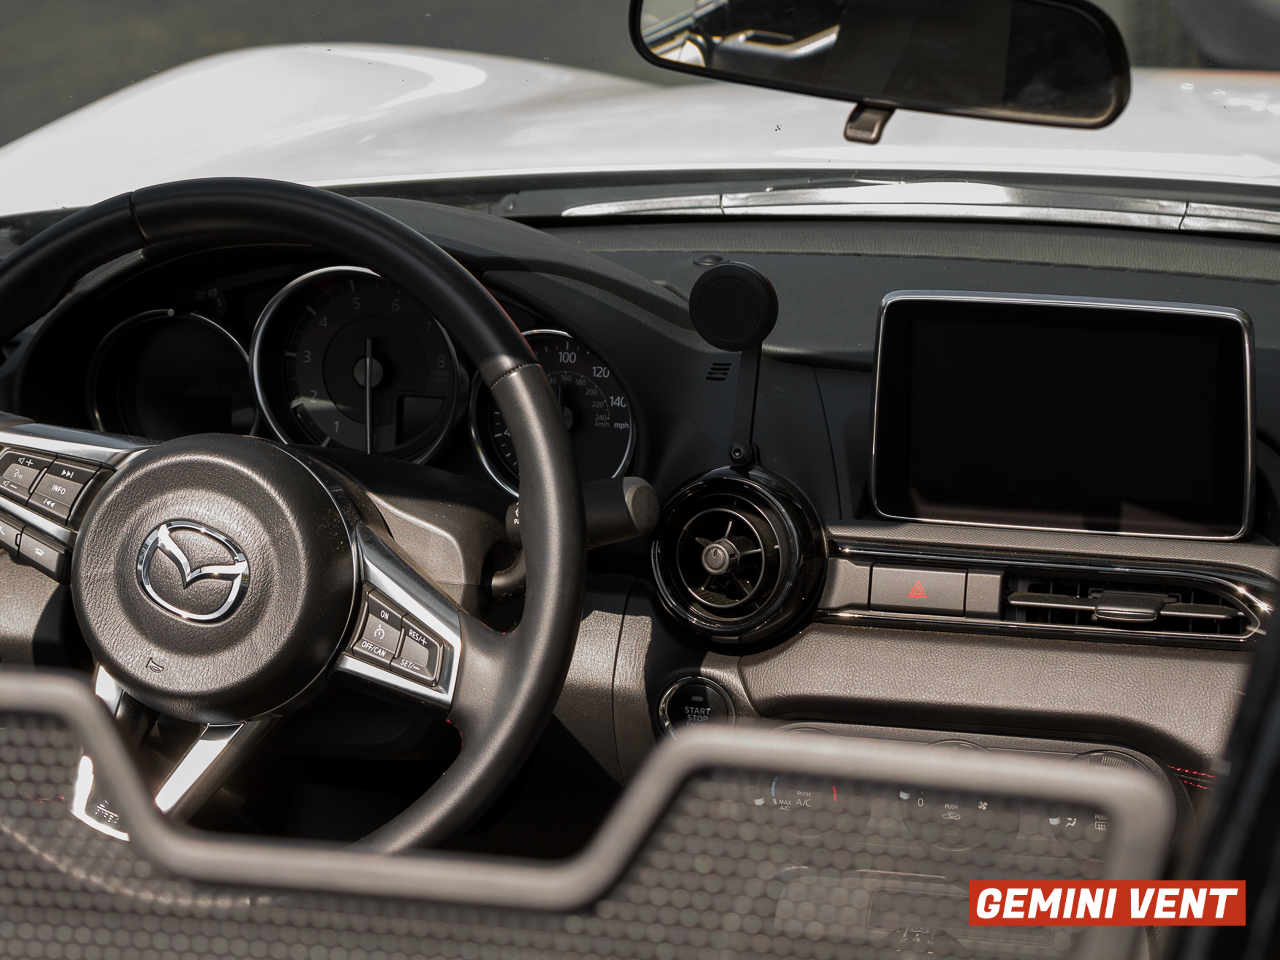 The CravenSpeed Gemini Vent Phone Mount installed in a 2016 ND MX-5 Miata.